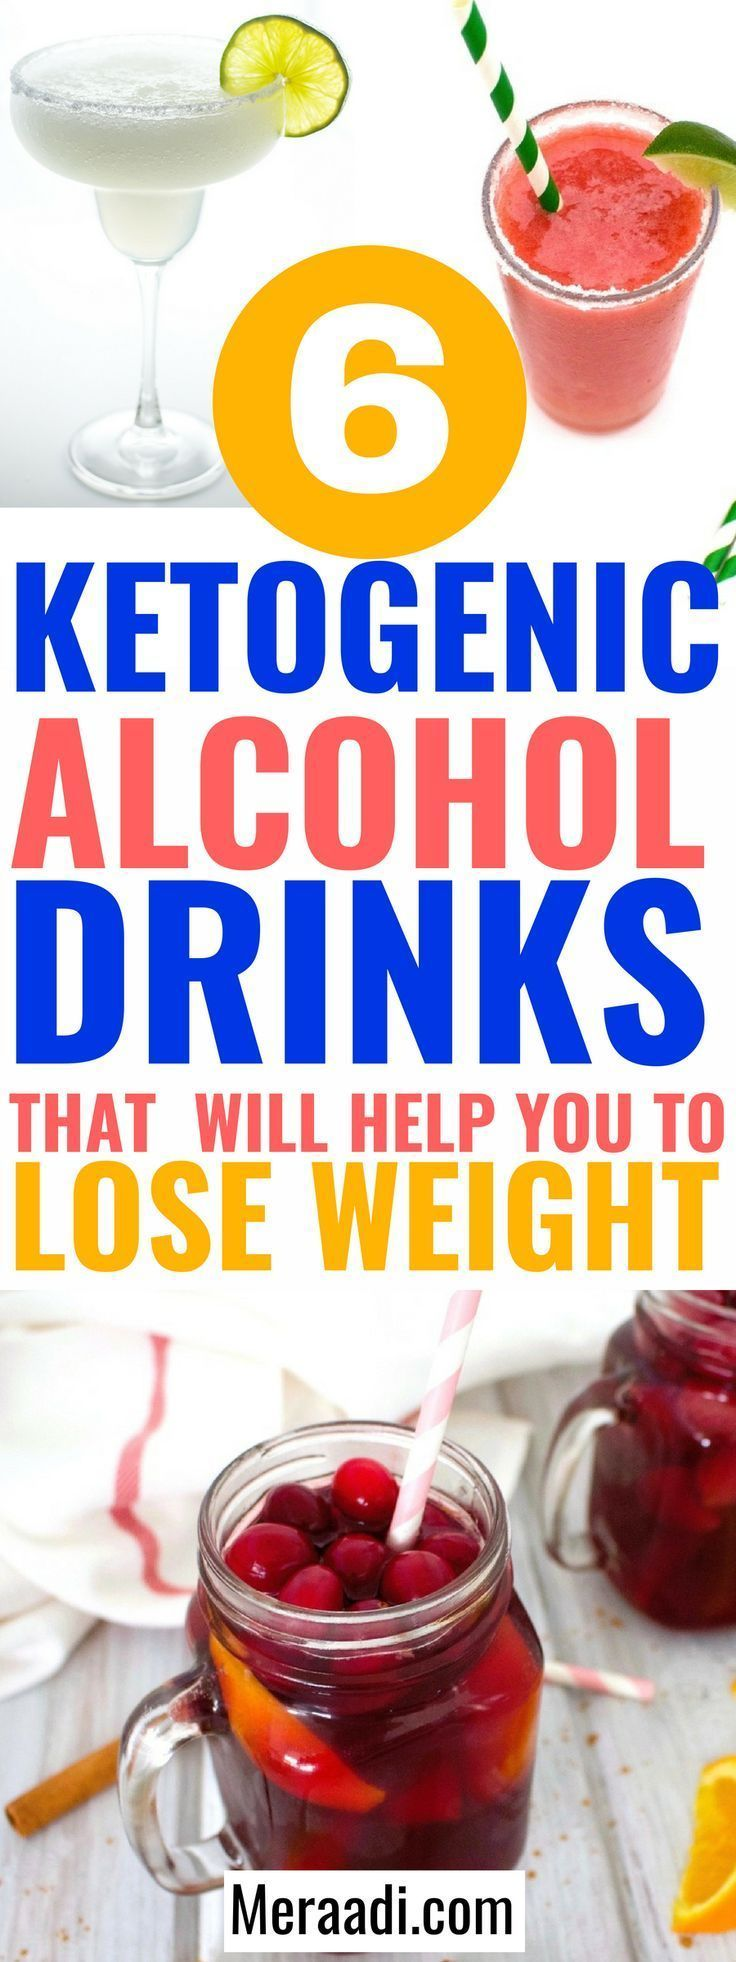 6 Ketogenic Alcoholic Drinks You Need To Keep Losing ...